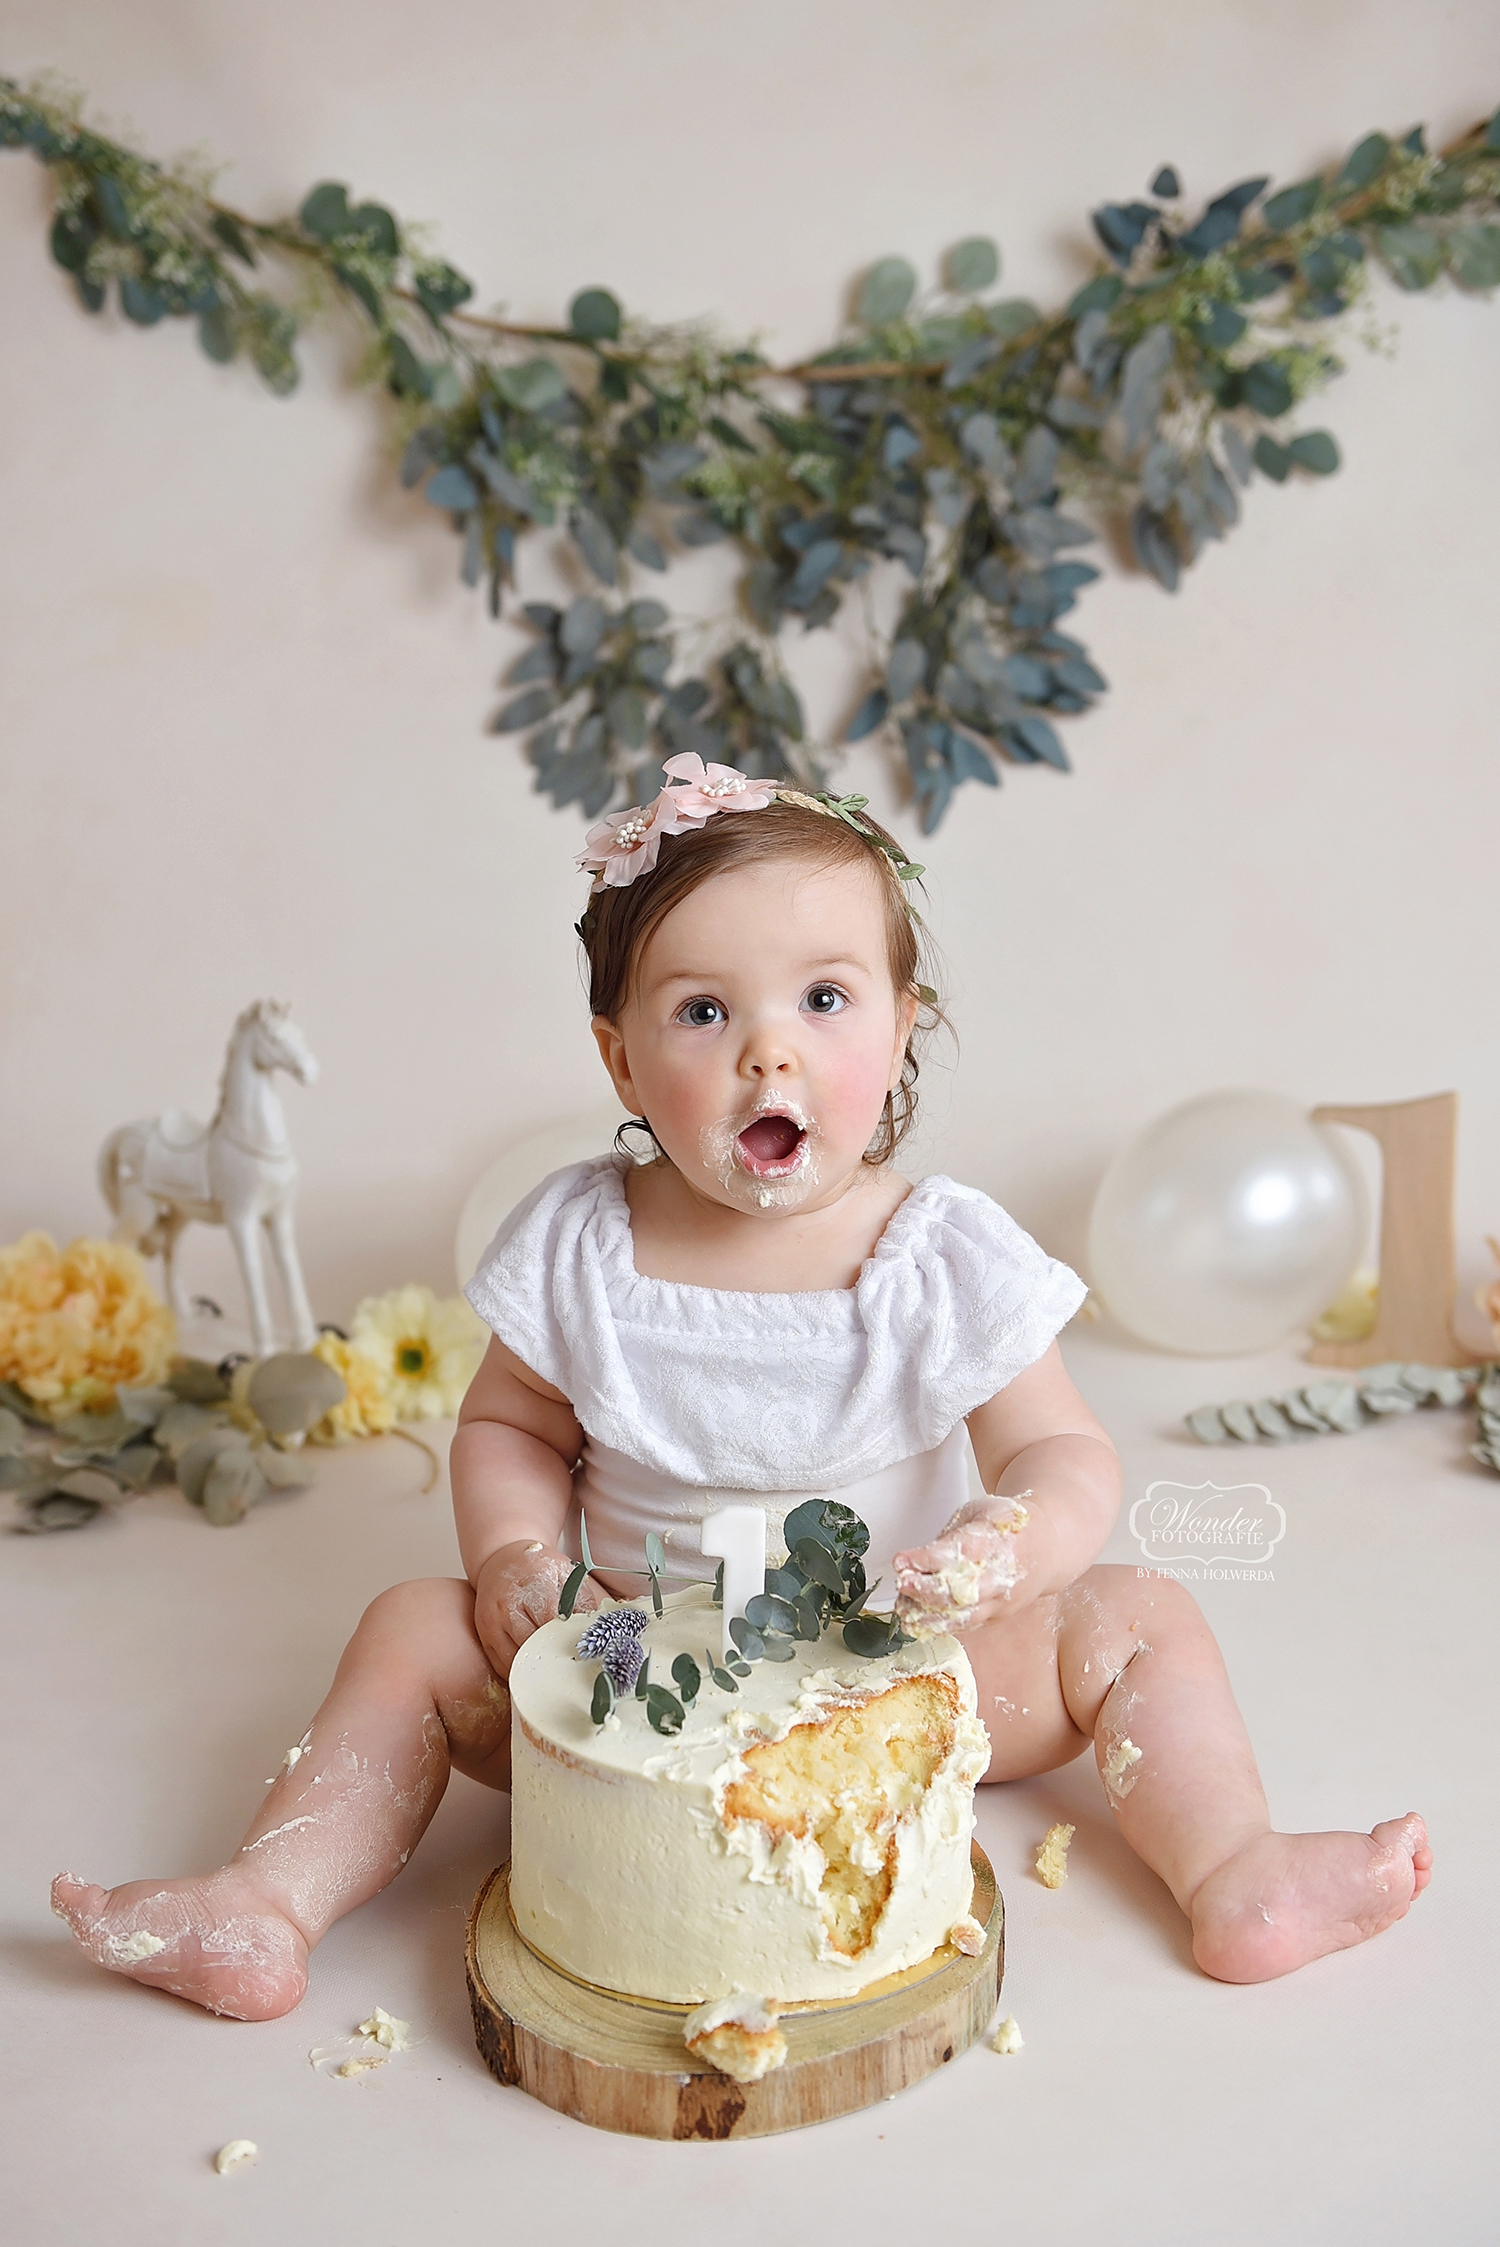 cake smash fotoshoot shoot nederland naturel boho